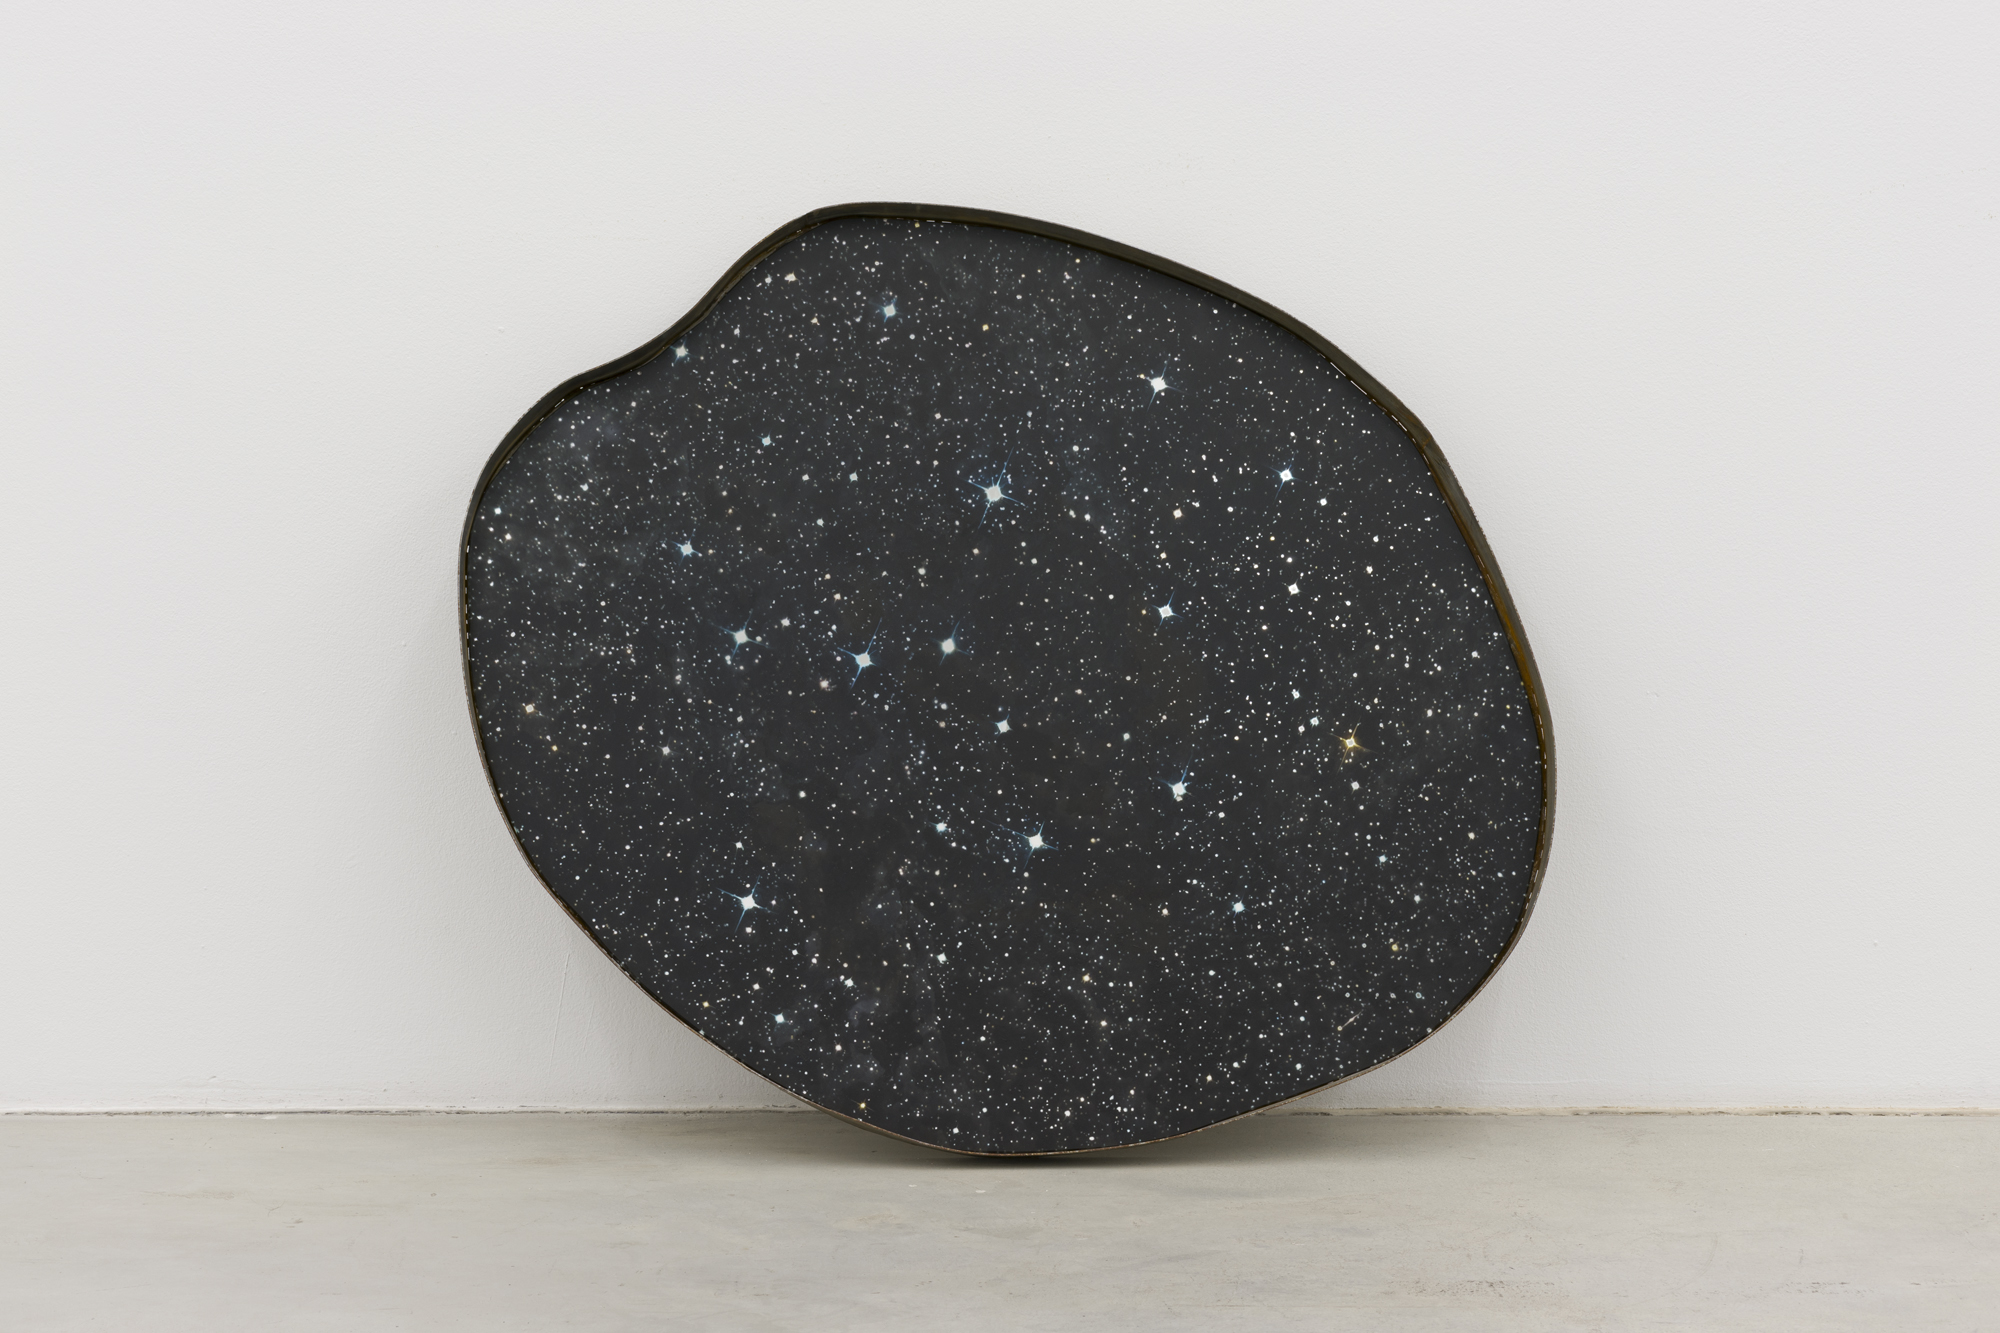 April, oil on mirror mounted in steel, 89 x 76 x 6 cm, 2015